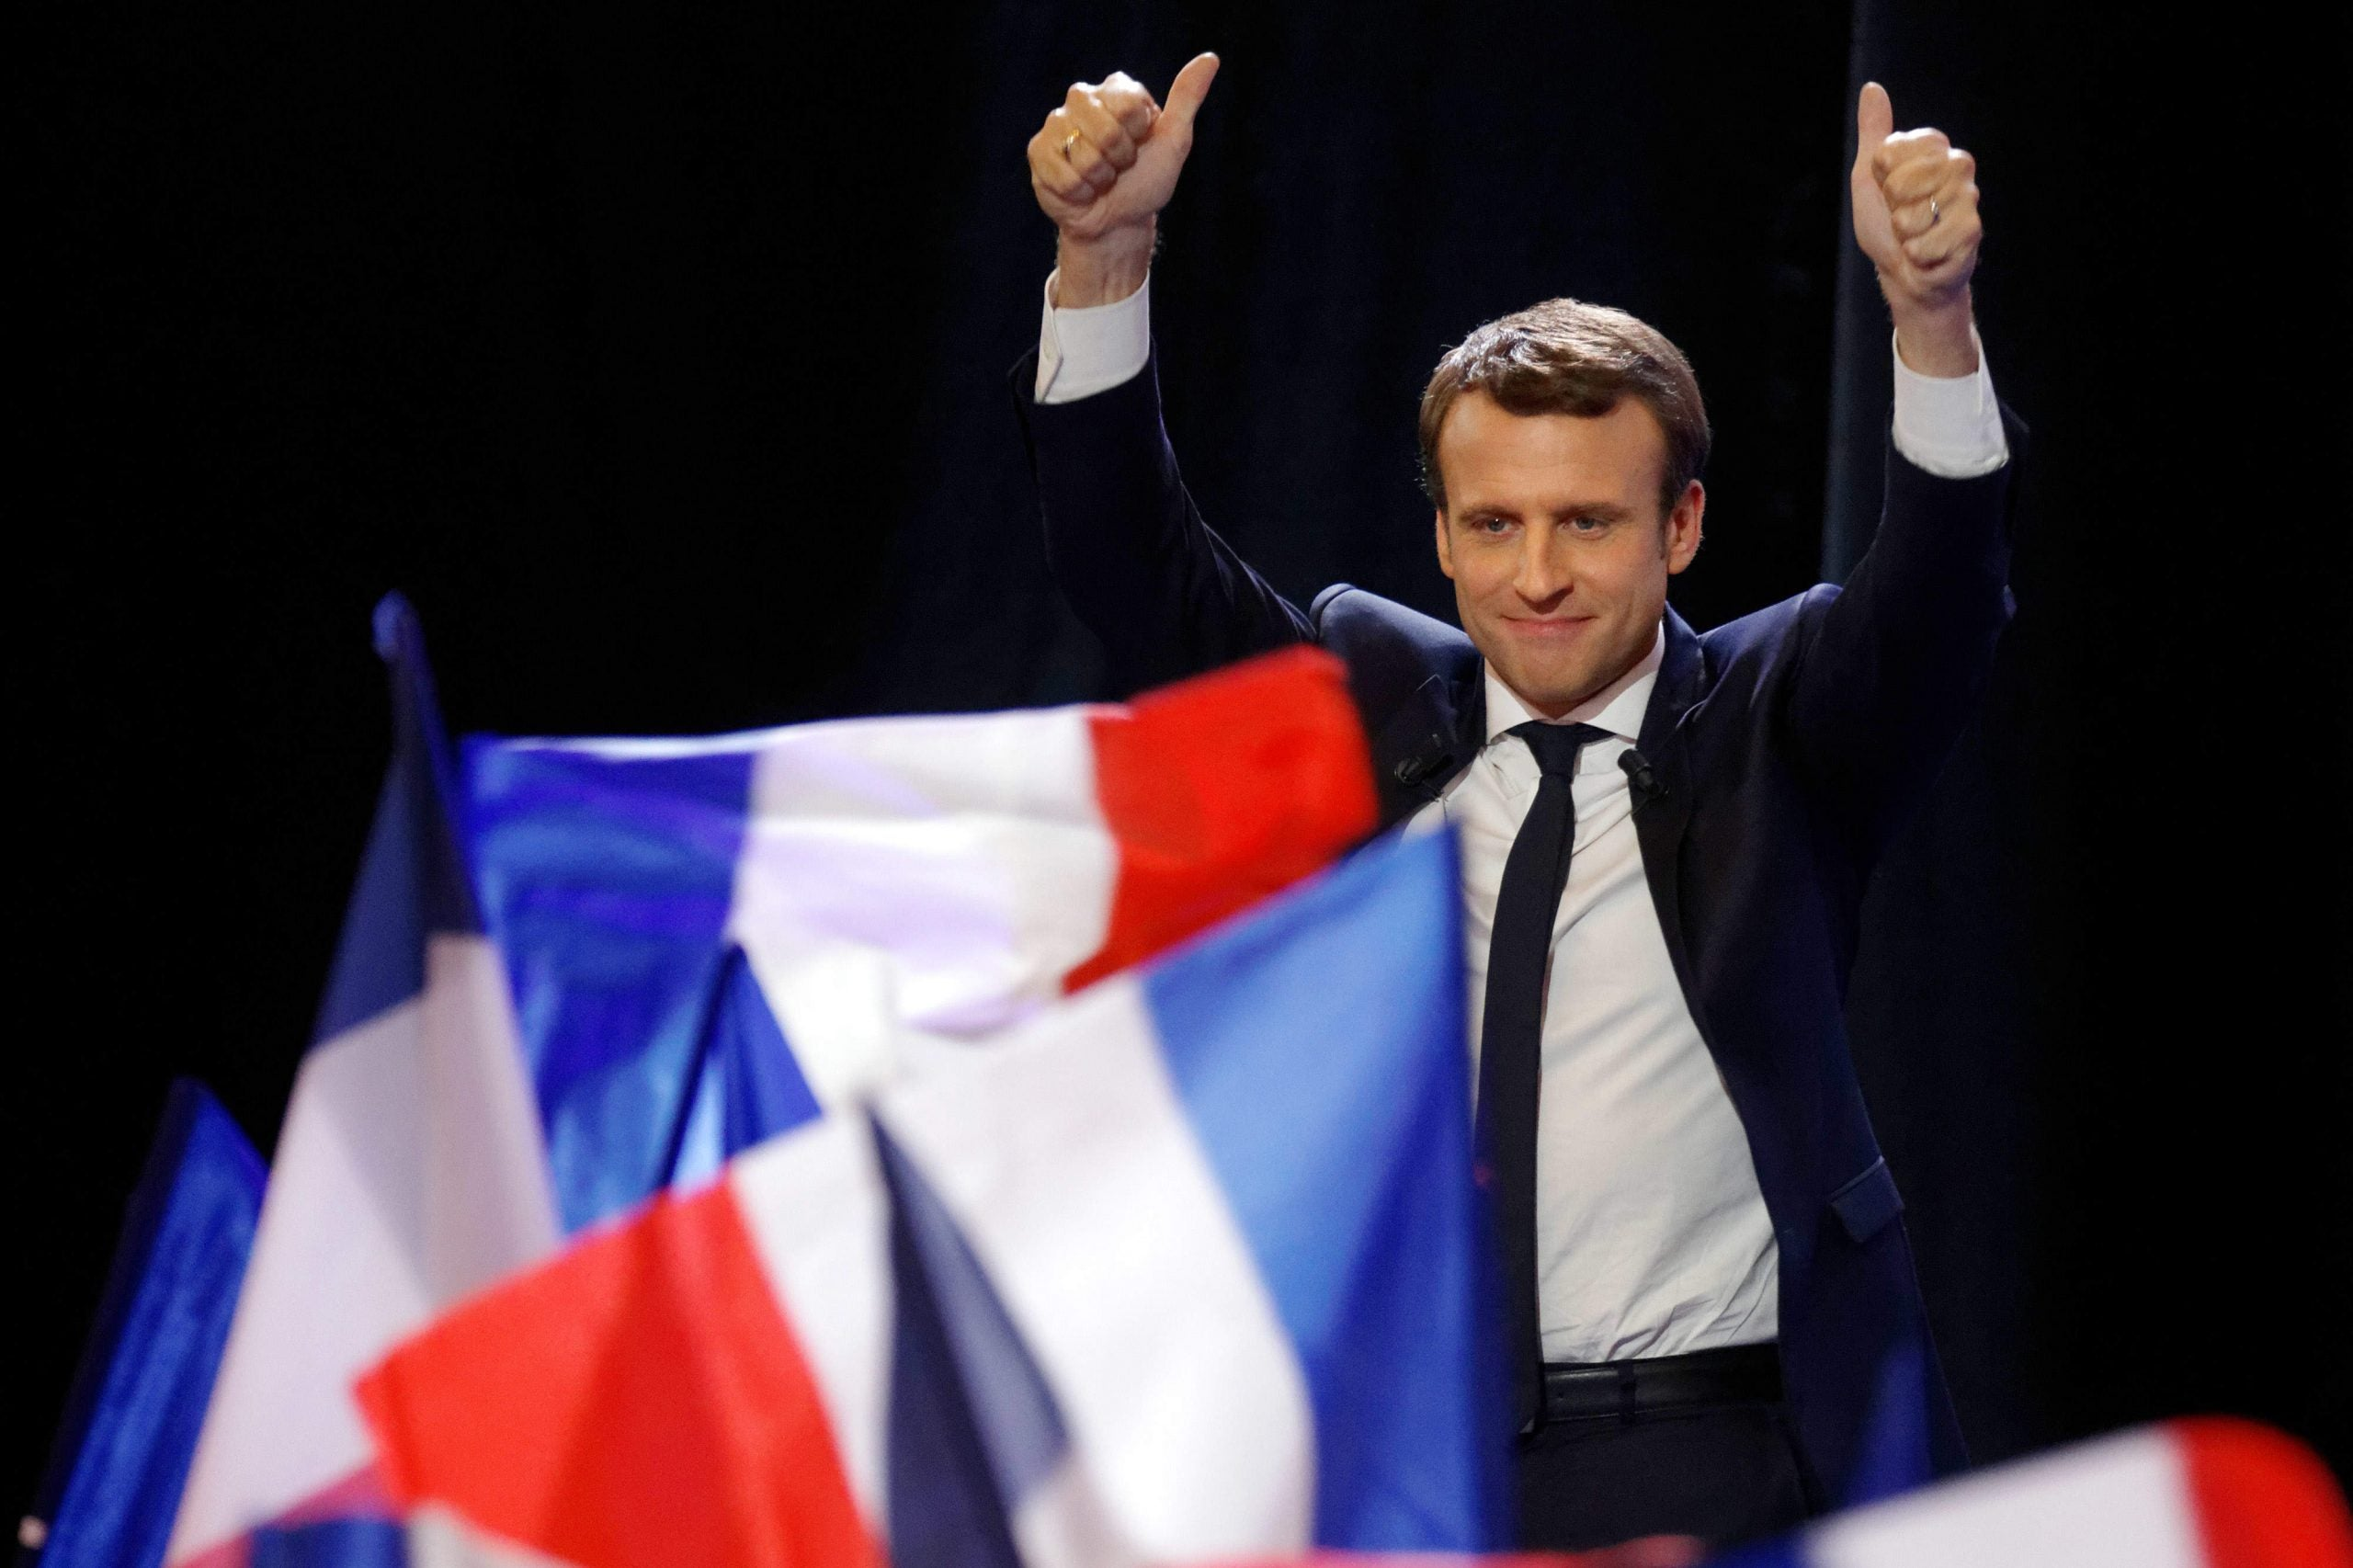 The new French revolution: how En Marche! disrupted politics